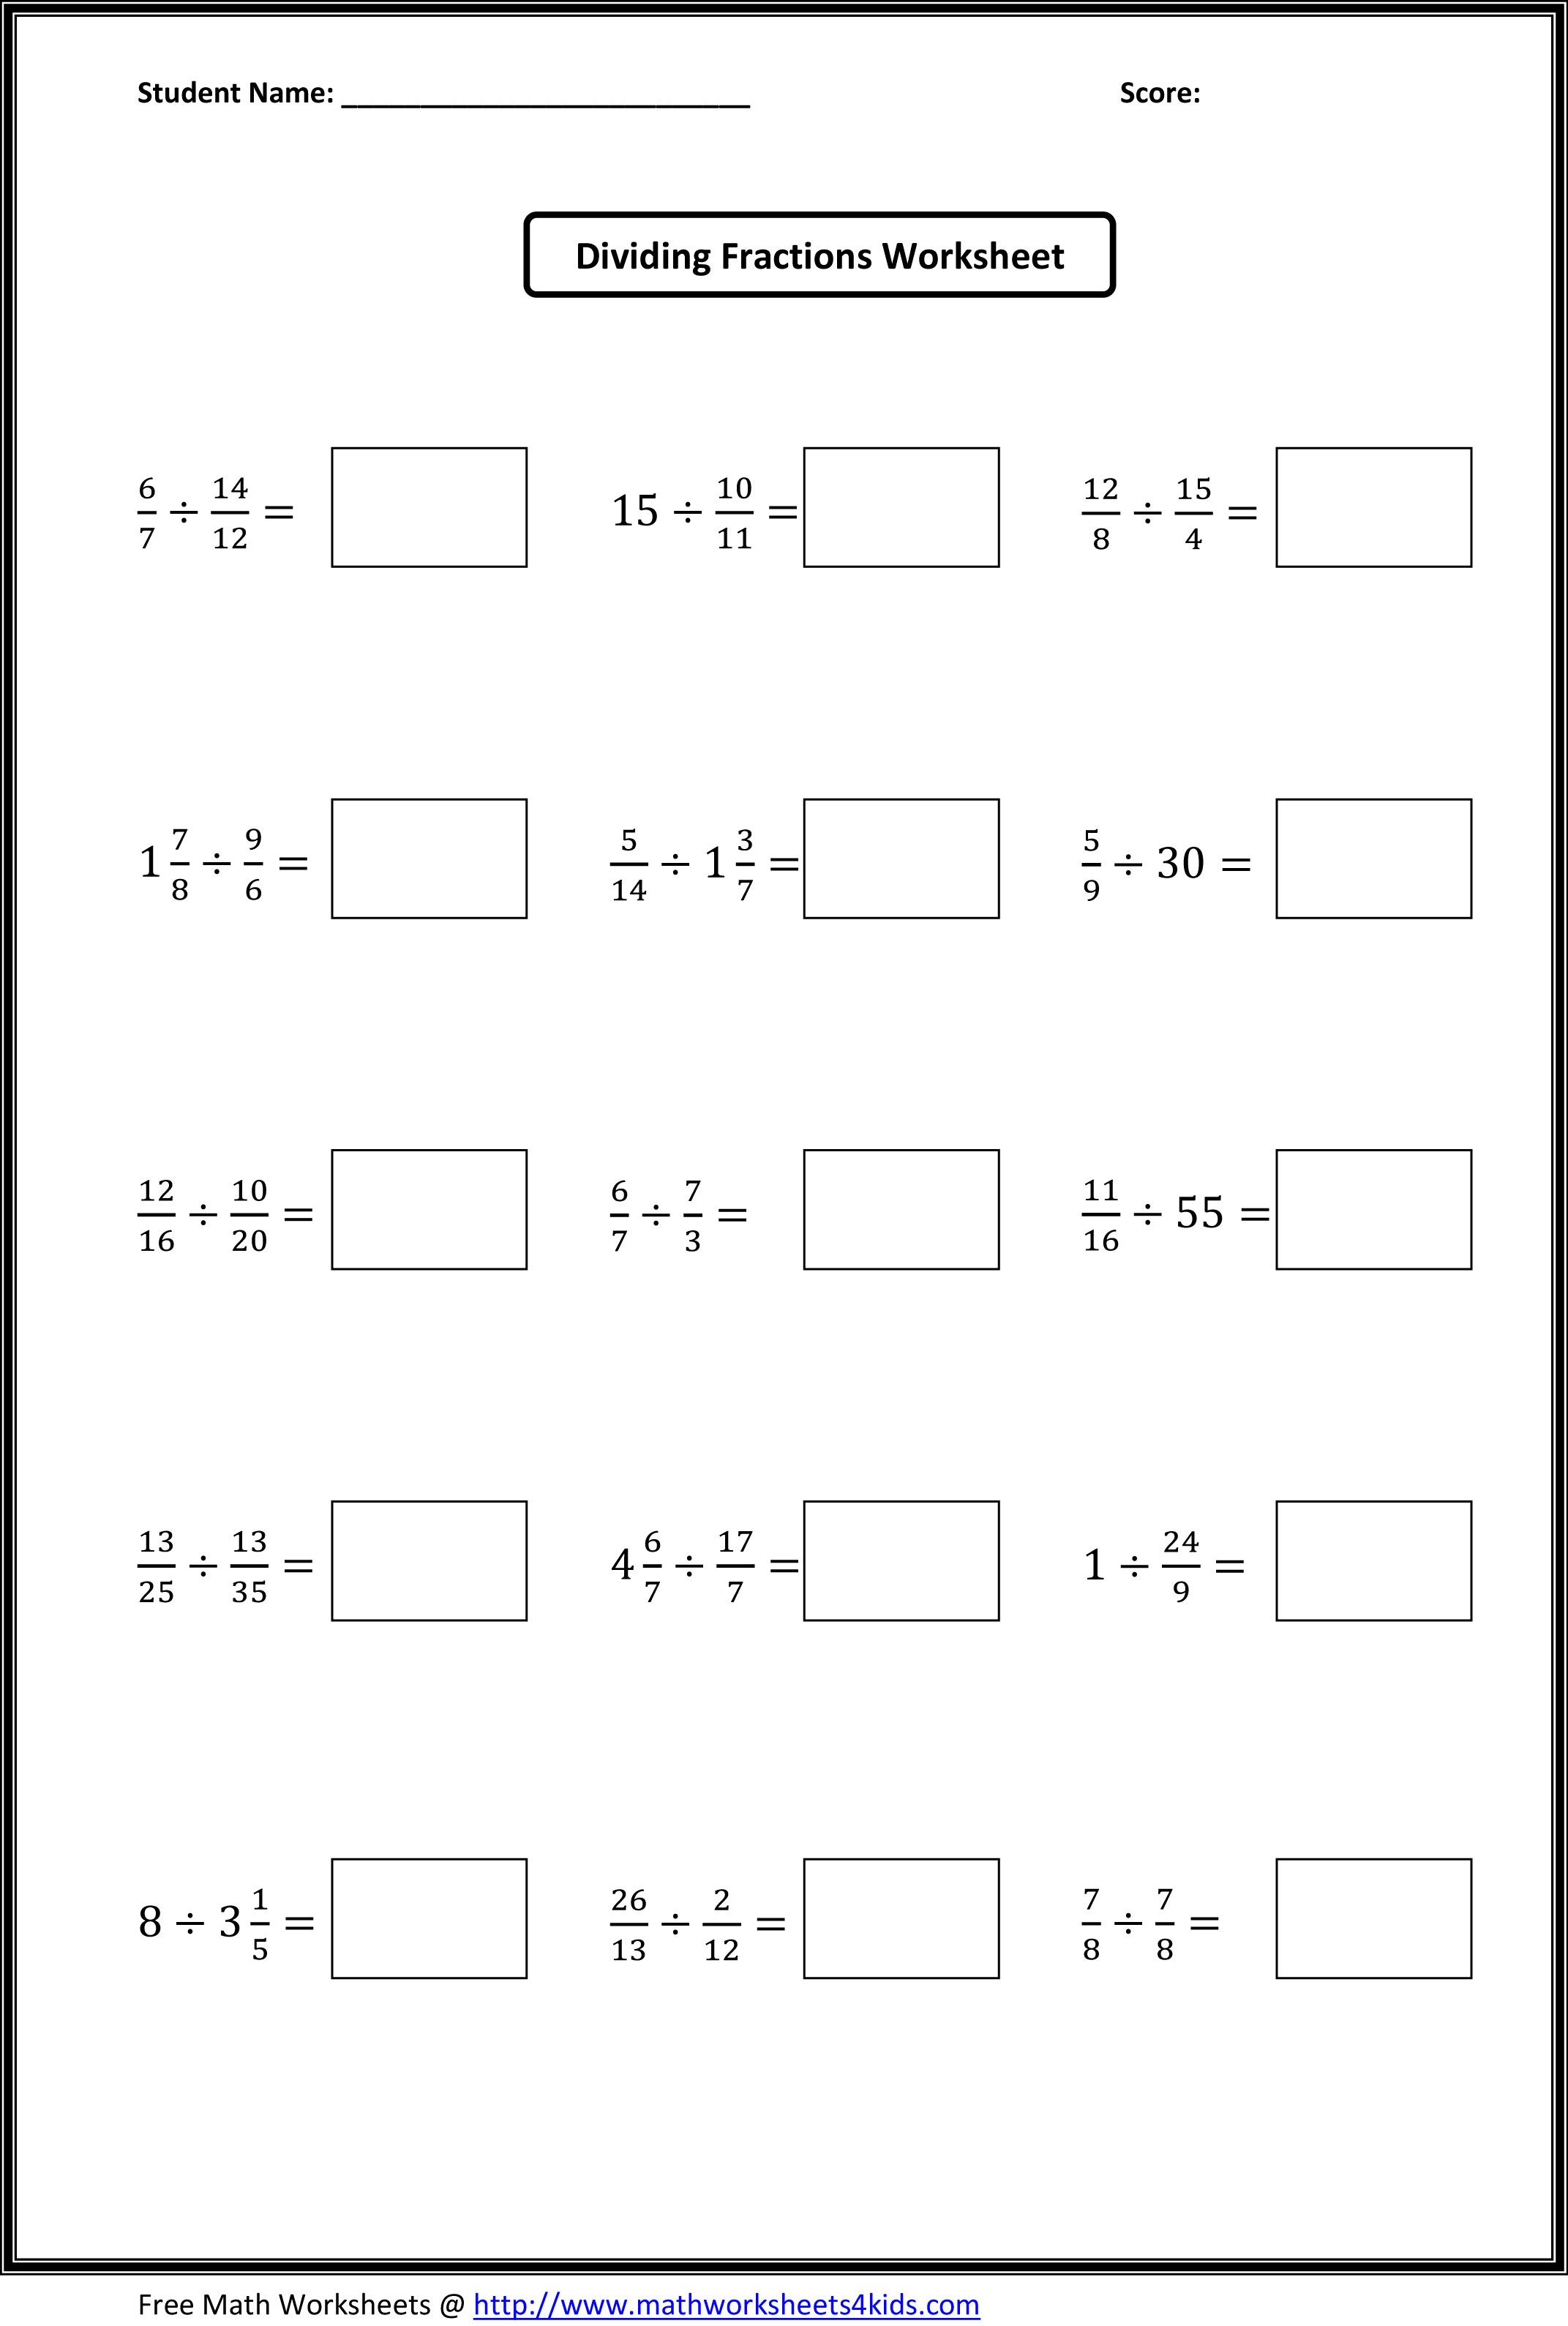 worksheet Common Core Fractions Worksheets dividing fractions worksheets whats new pinterest worksheets